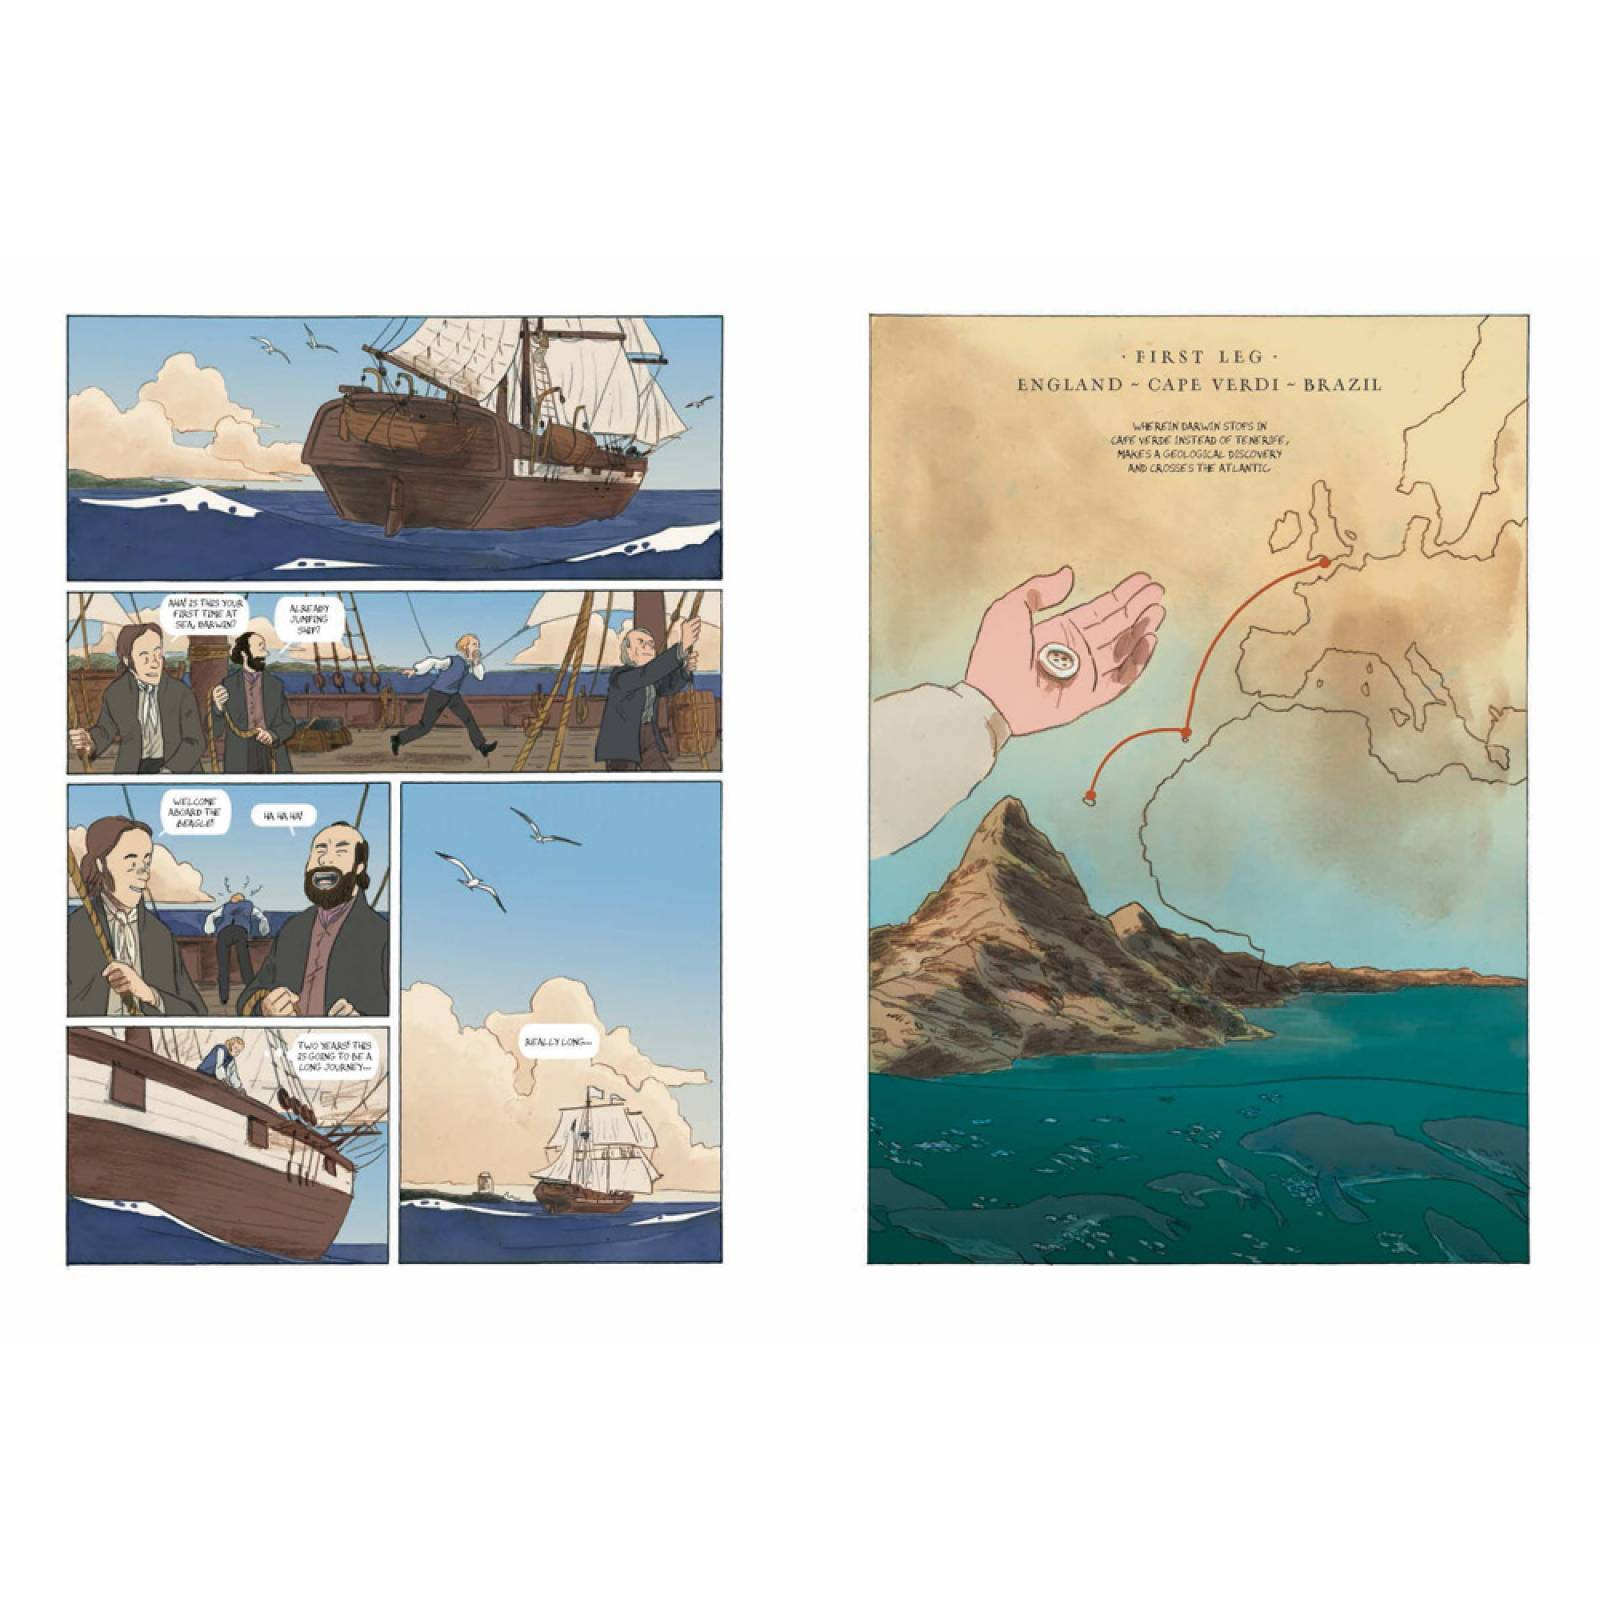 Darwin: An Exceptional Voyage - Hardback Book thumbnails